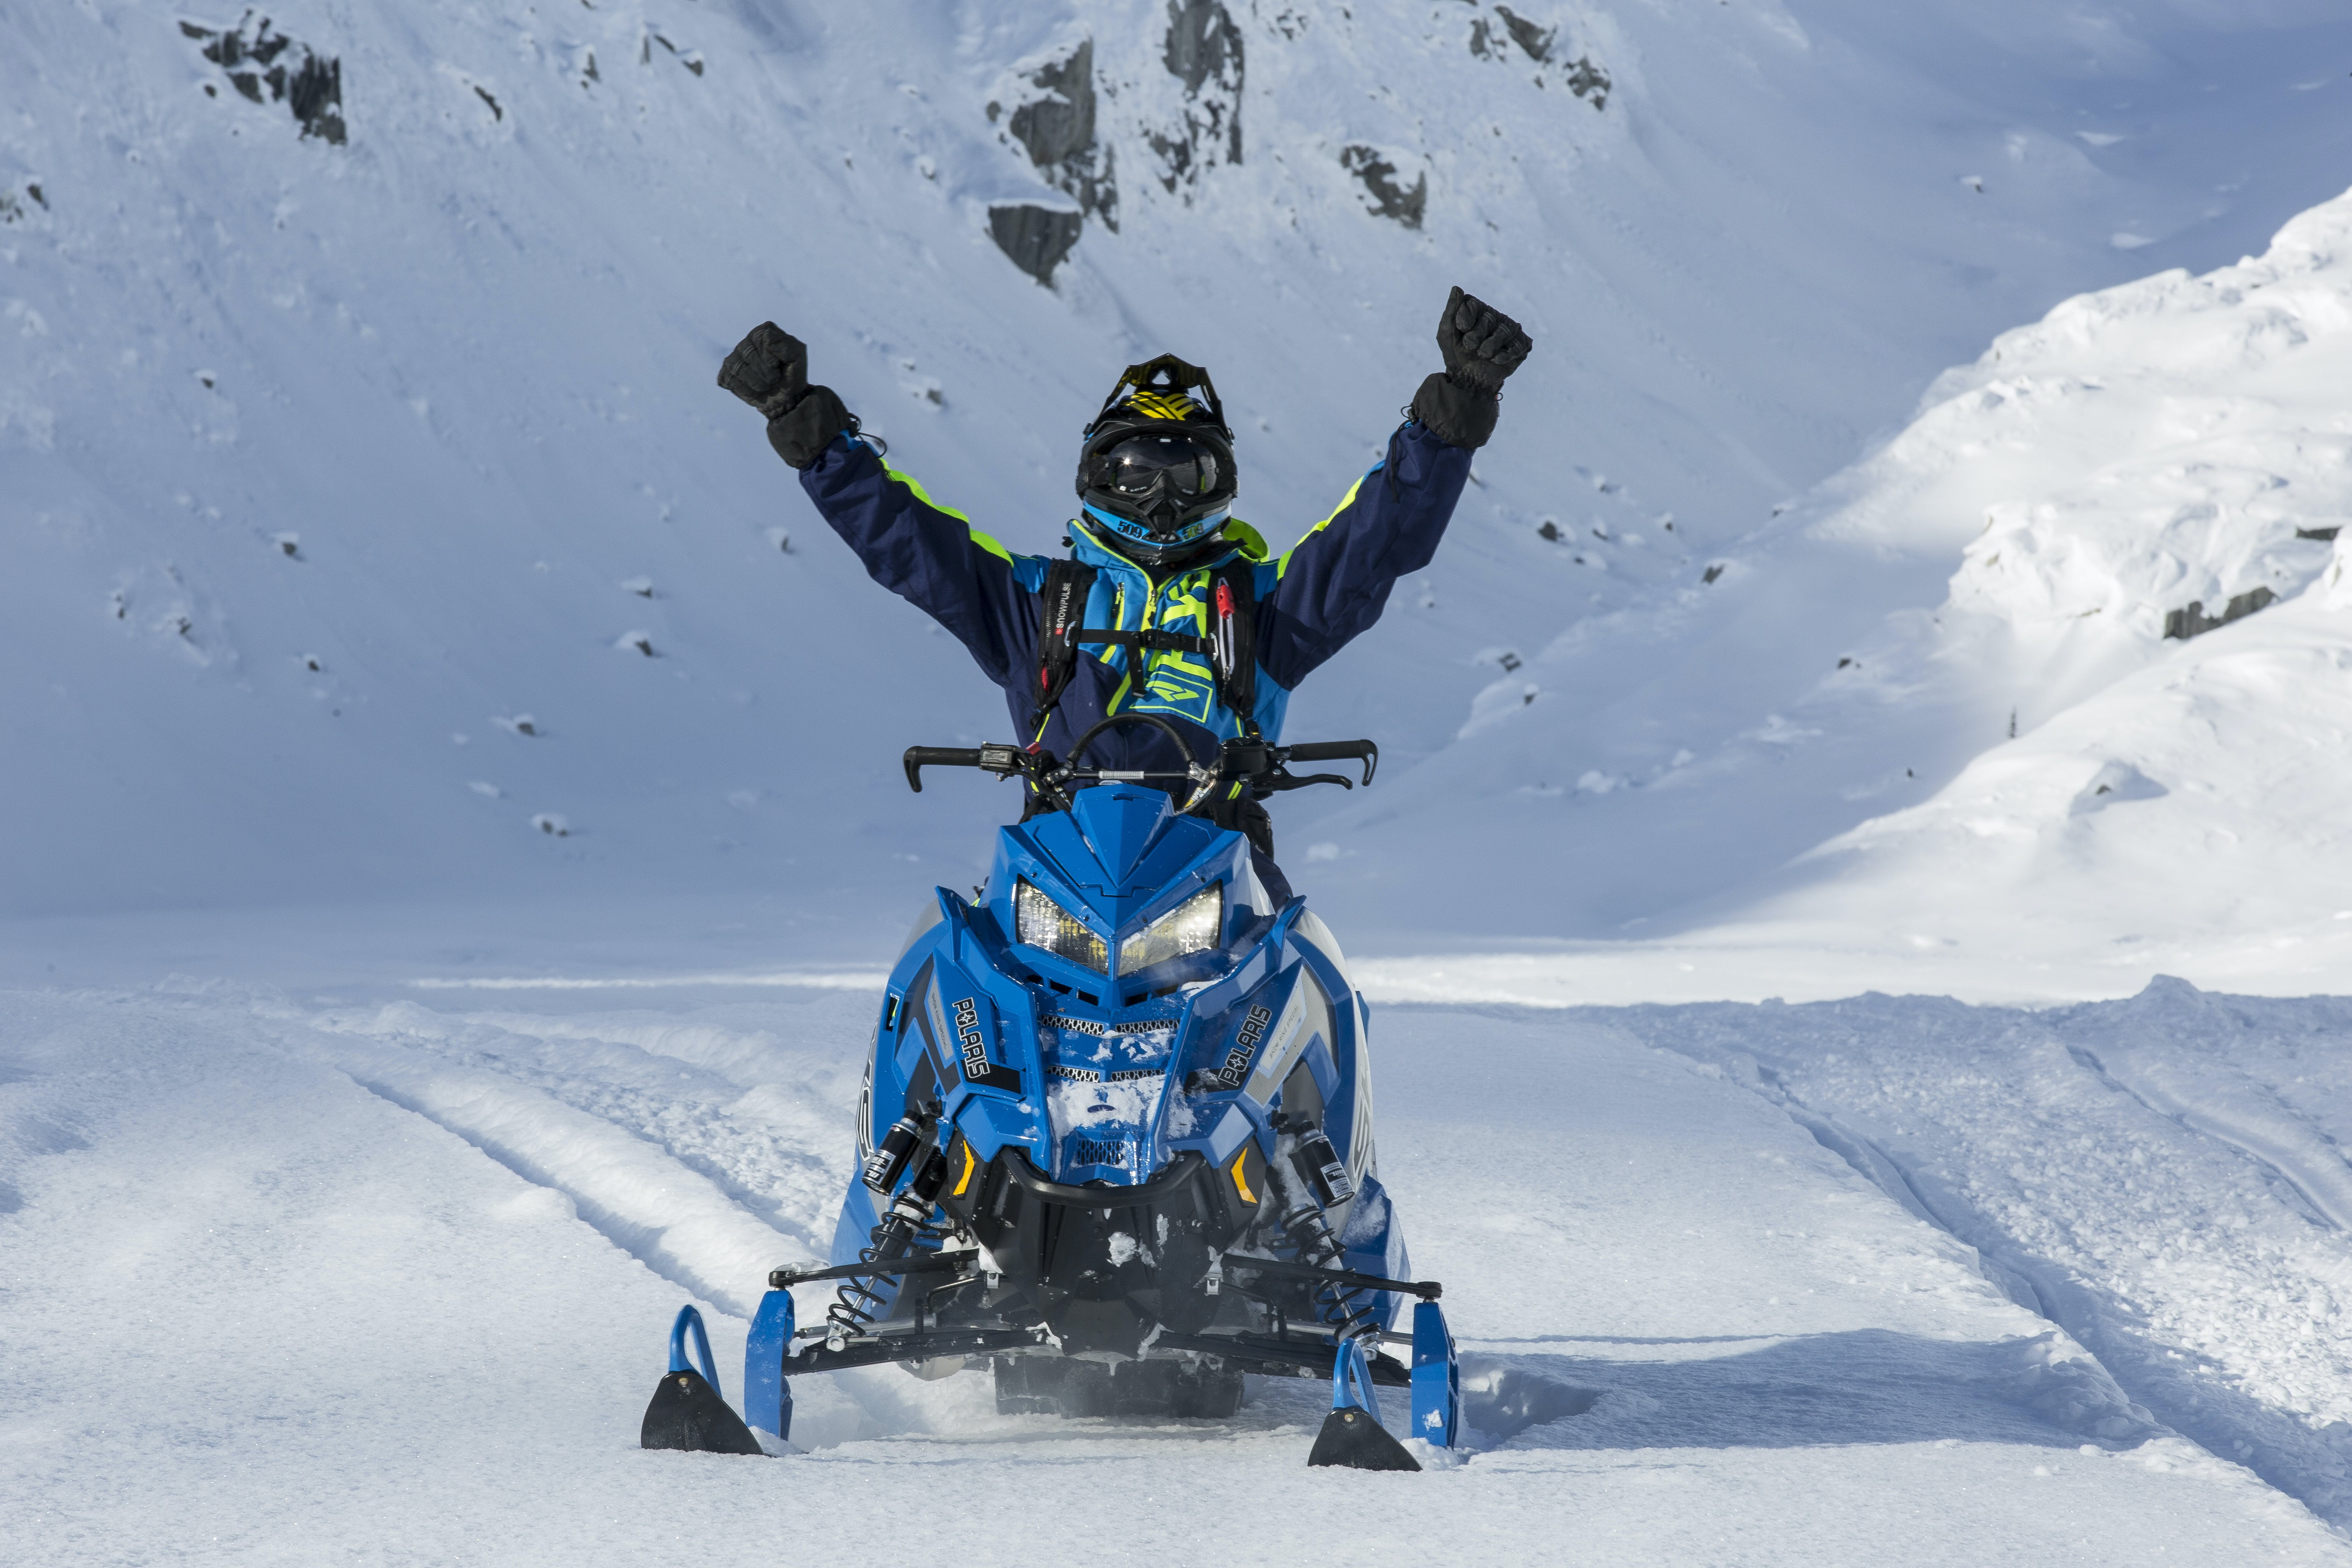 Person Riding Blue Snow Mobile